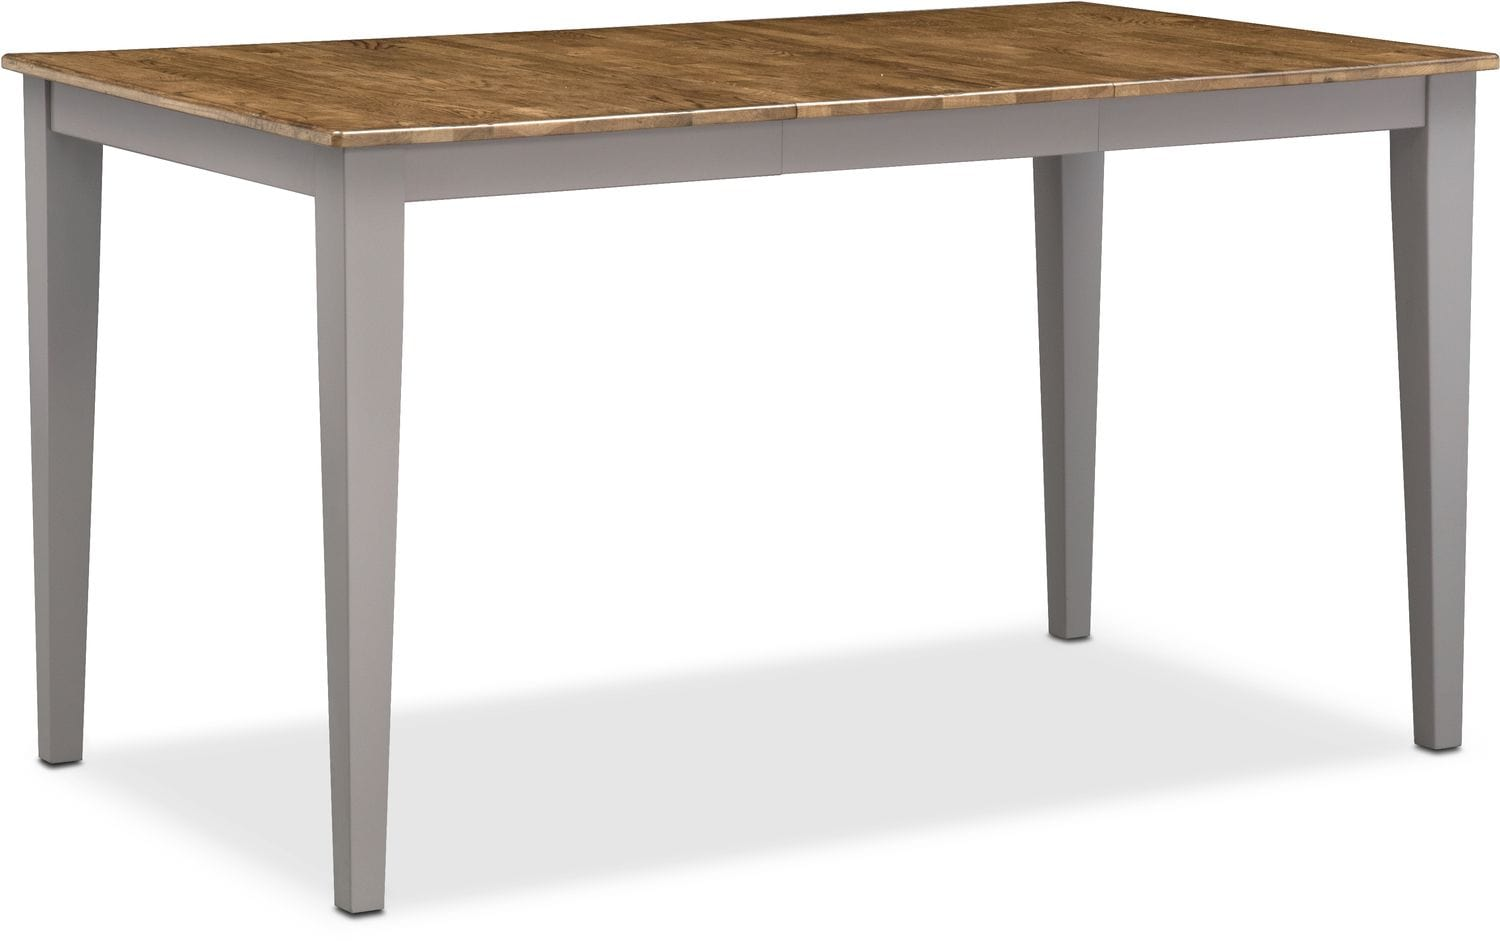 Nantucket Counter Height Table Oak and Gray American  : 506096 from www.americansignaturefurniture.com size 1500 x 941 jpeg 92kB